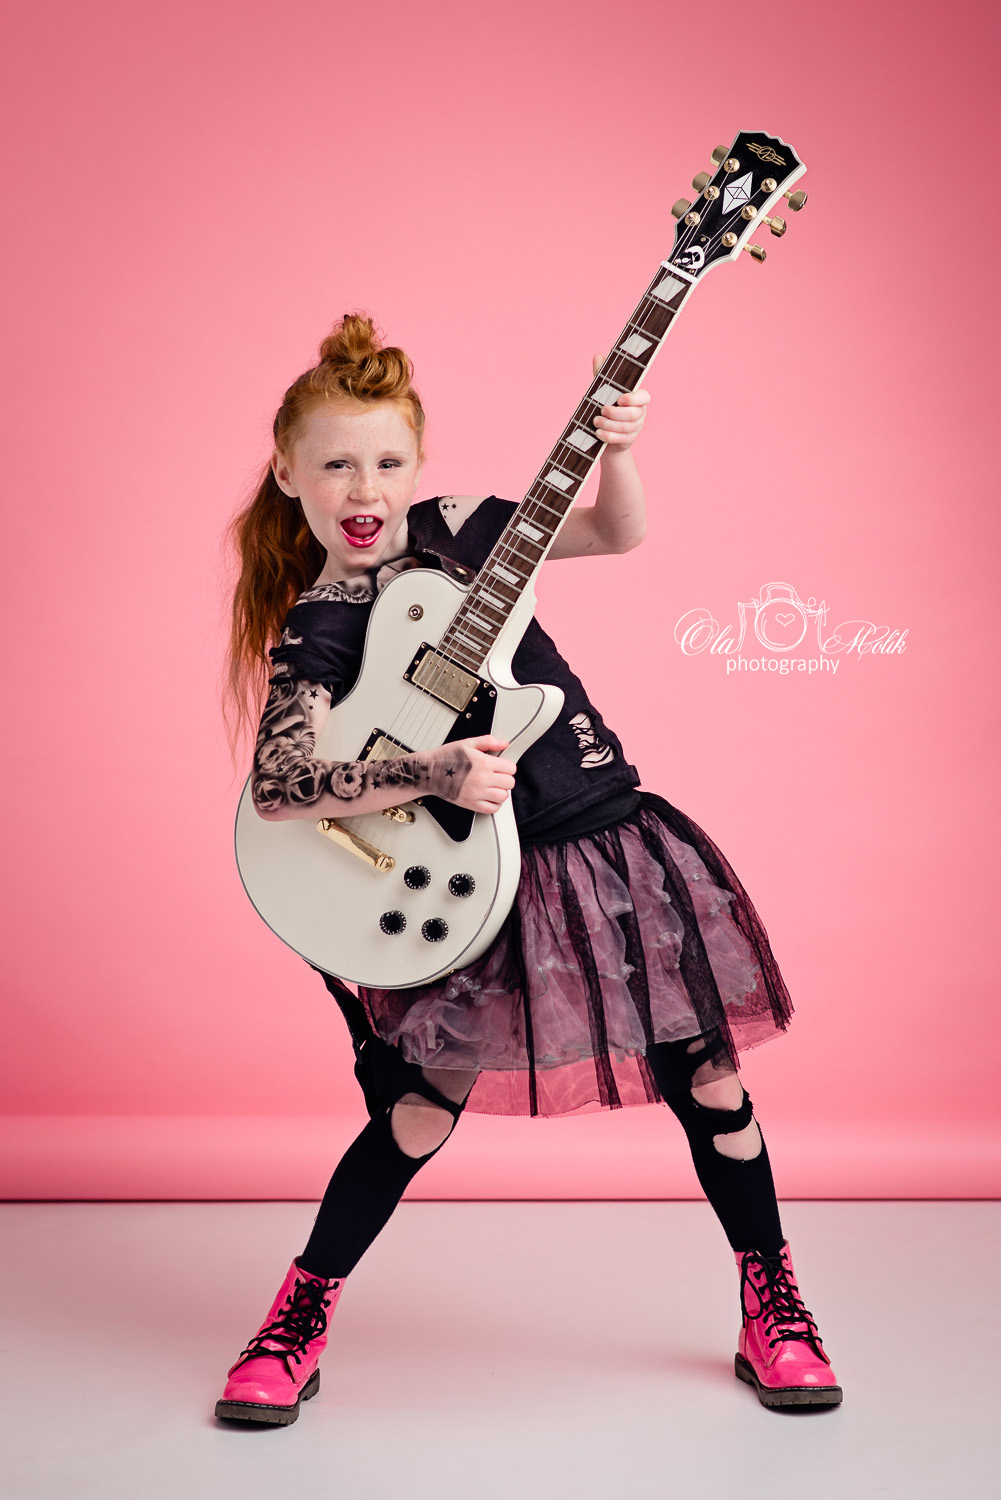 Rock star Photo shoot